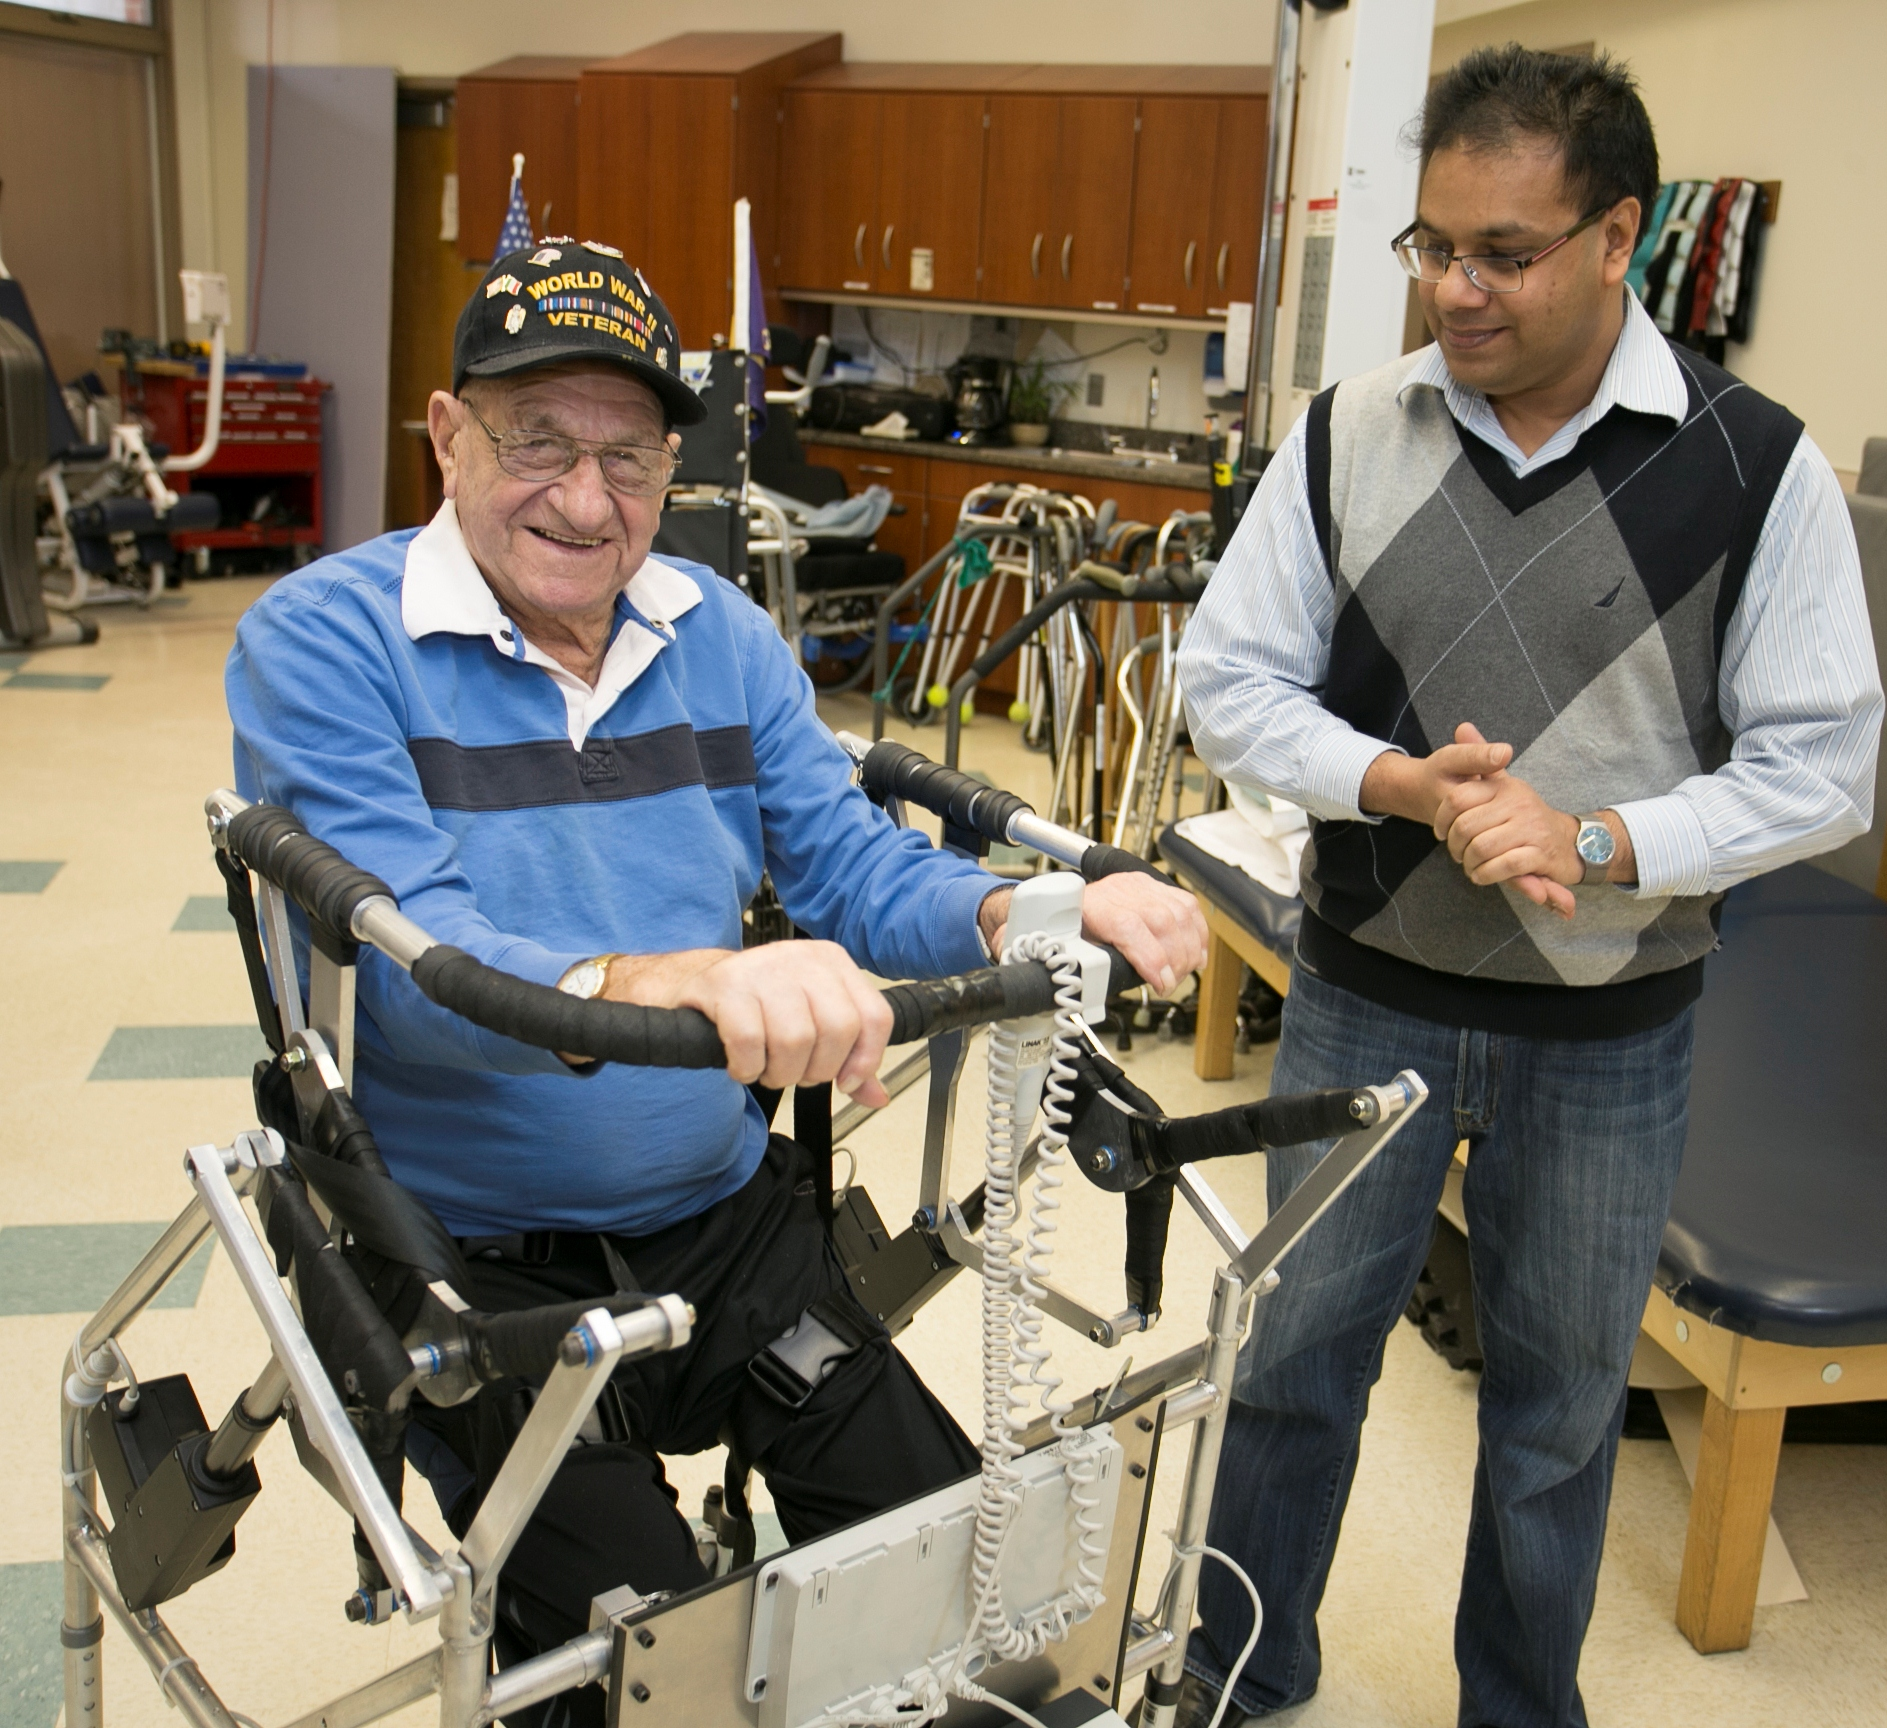 Stony Brook, NY: Long Island State Veterans Home: Anurag Purwar, Ph.D., Research Associate Professor, Department of Mechanical Engineering lets veteran Michael Geronimo test drive his mobile assist device.